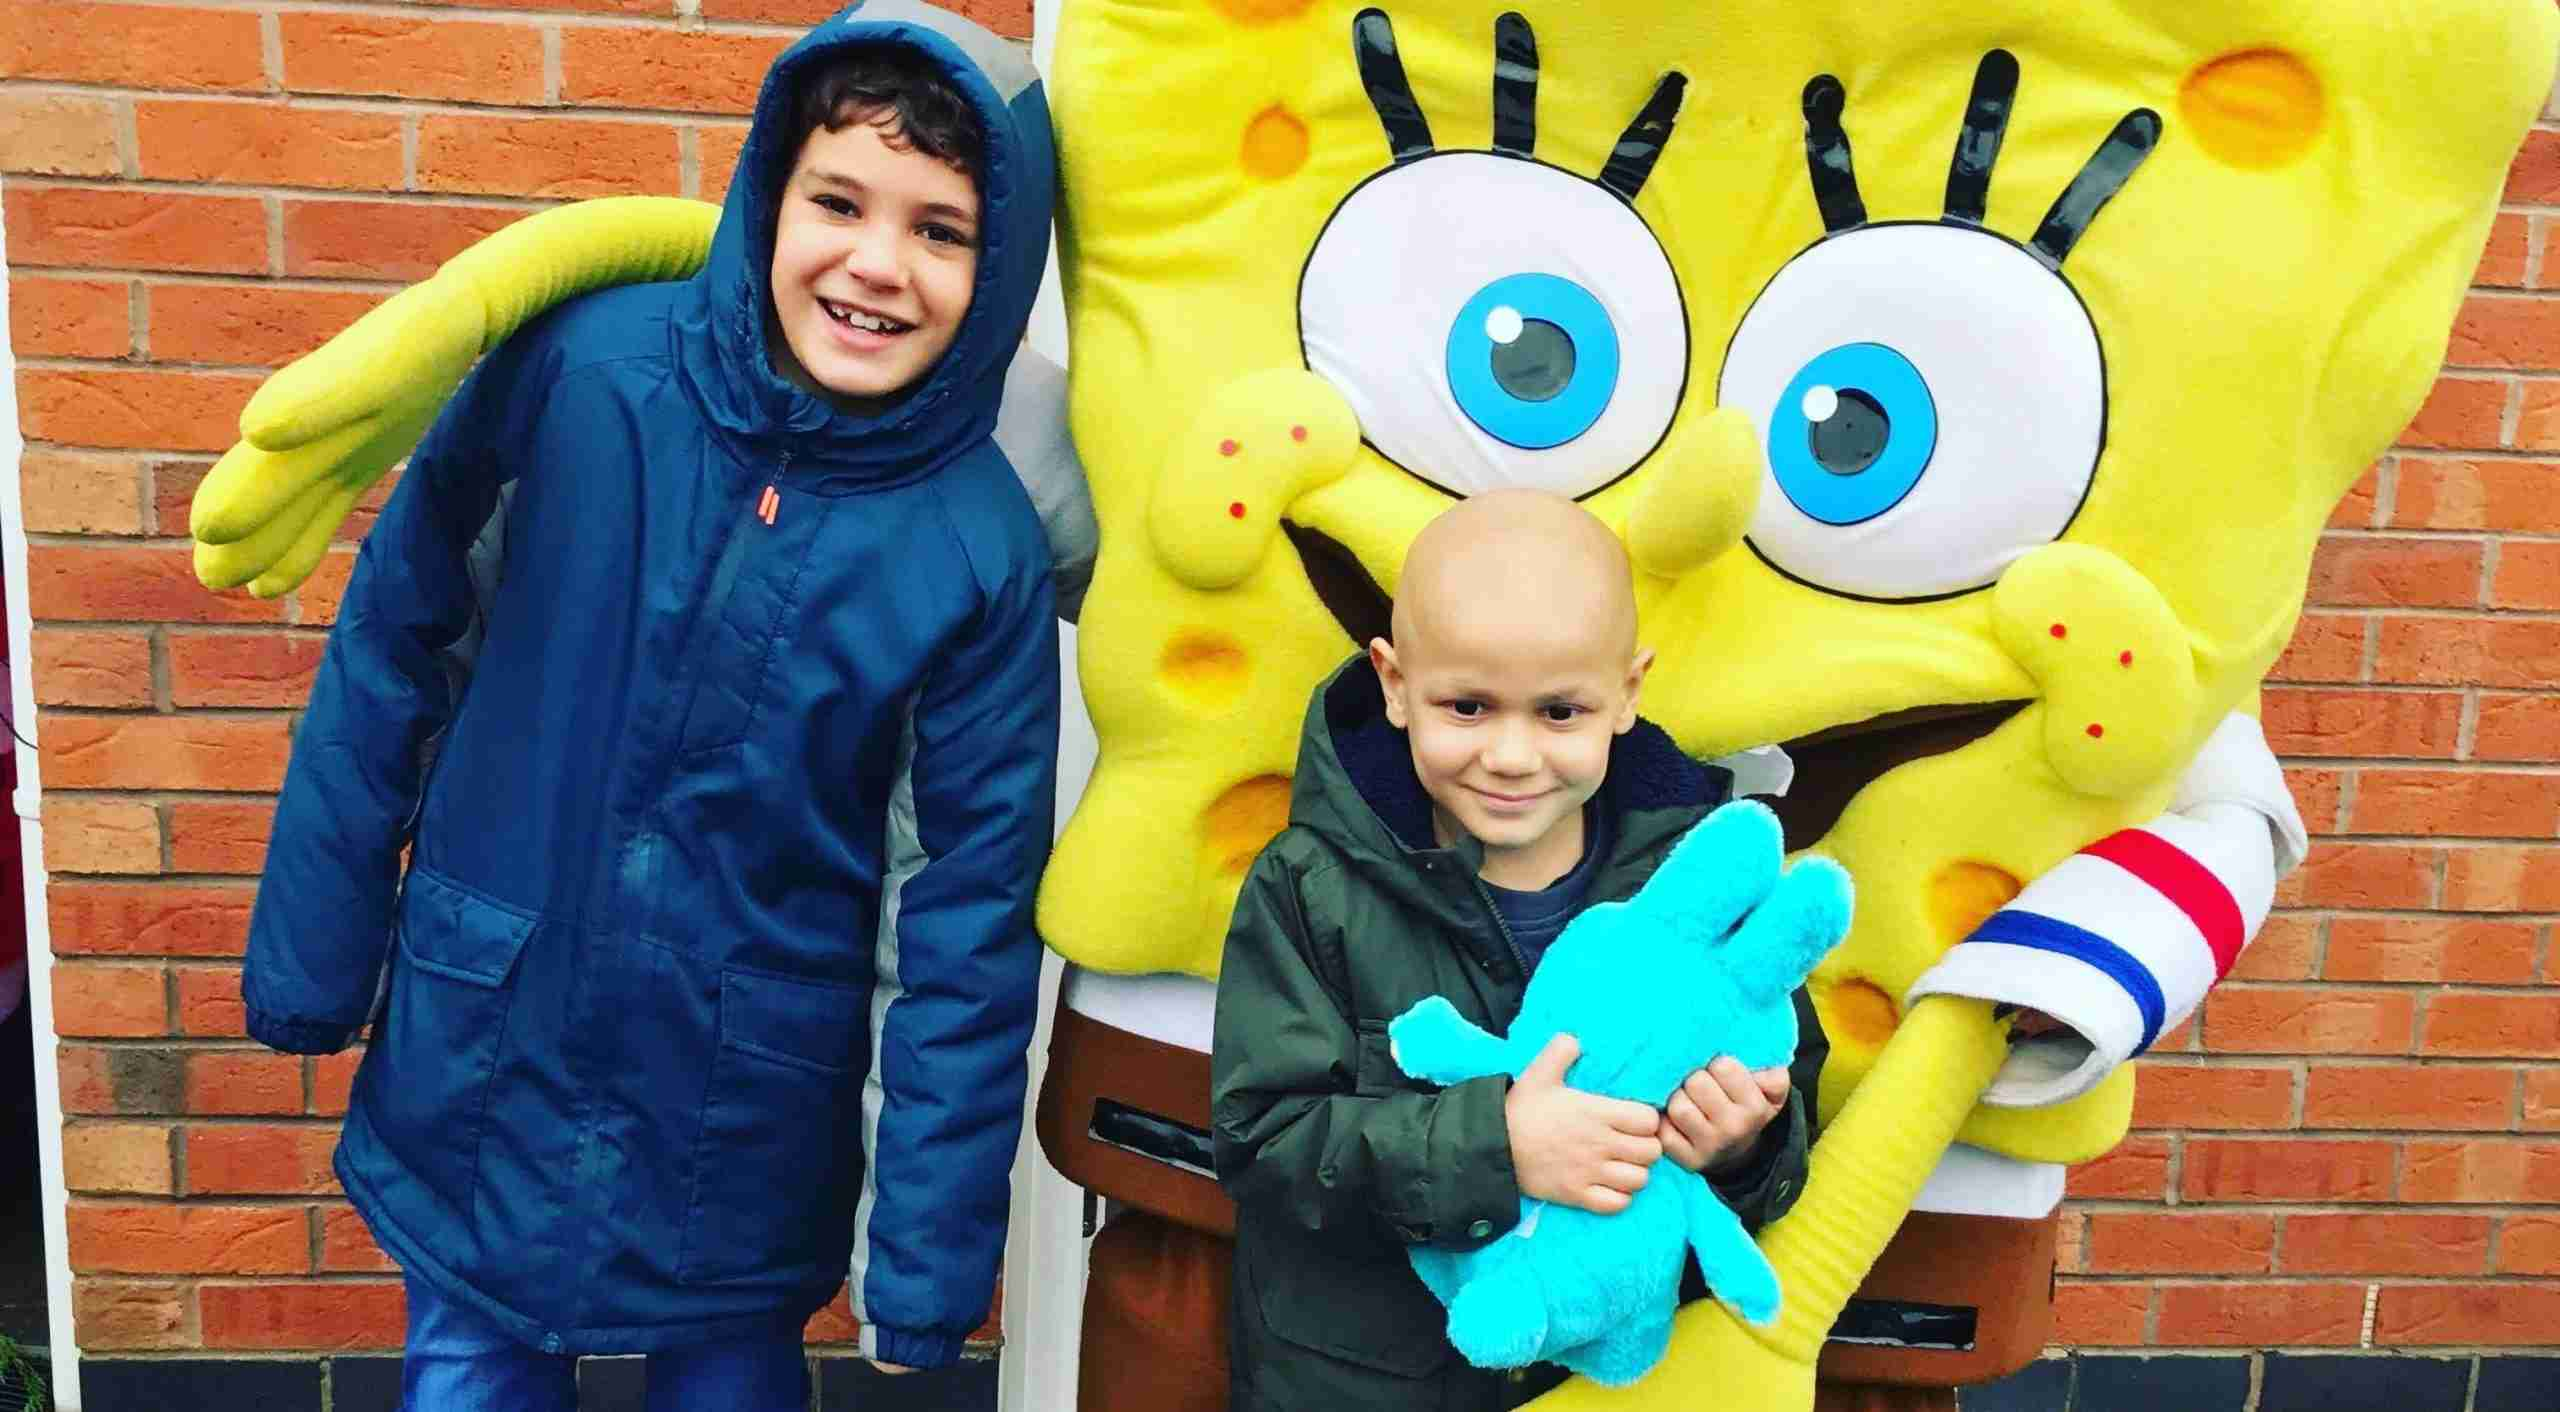 Cohen with his brother and spongebob